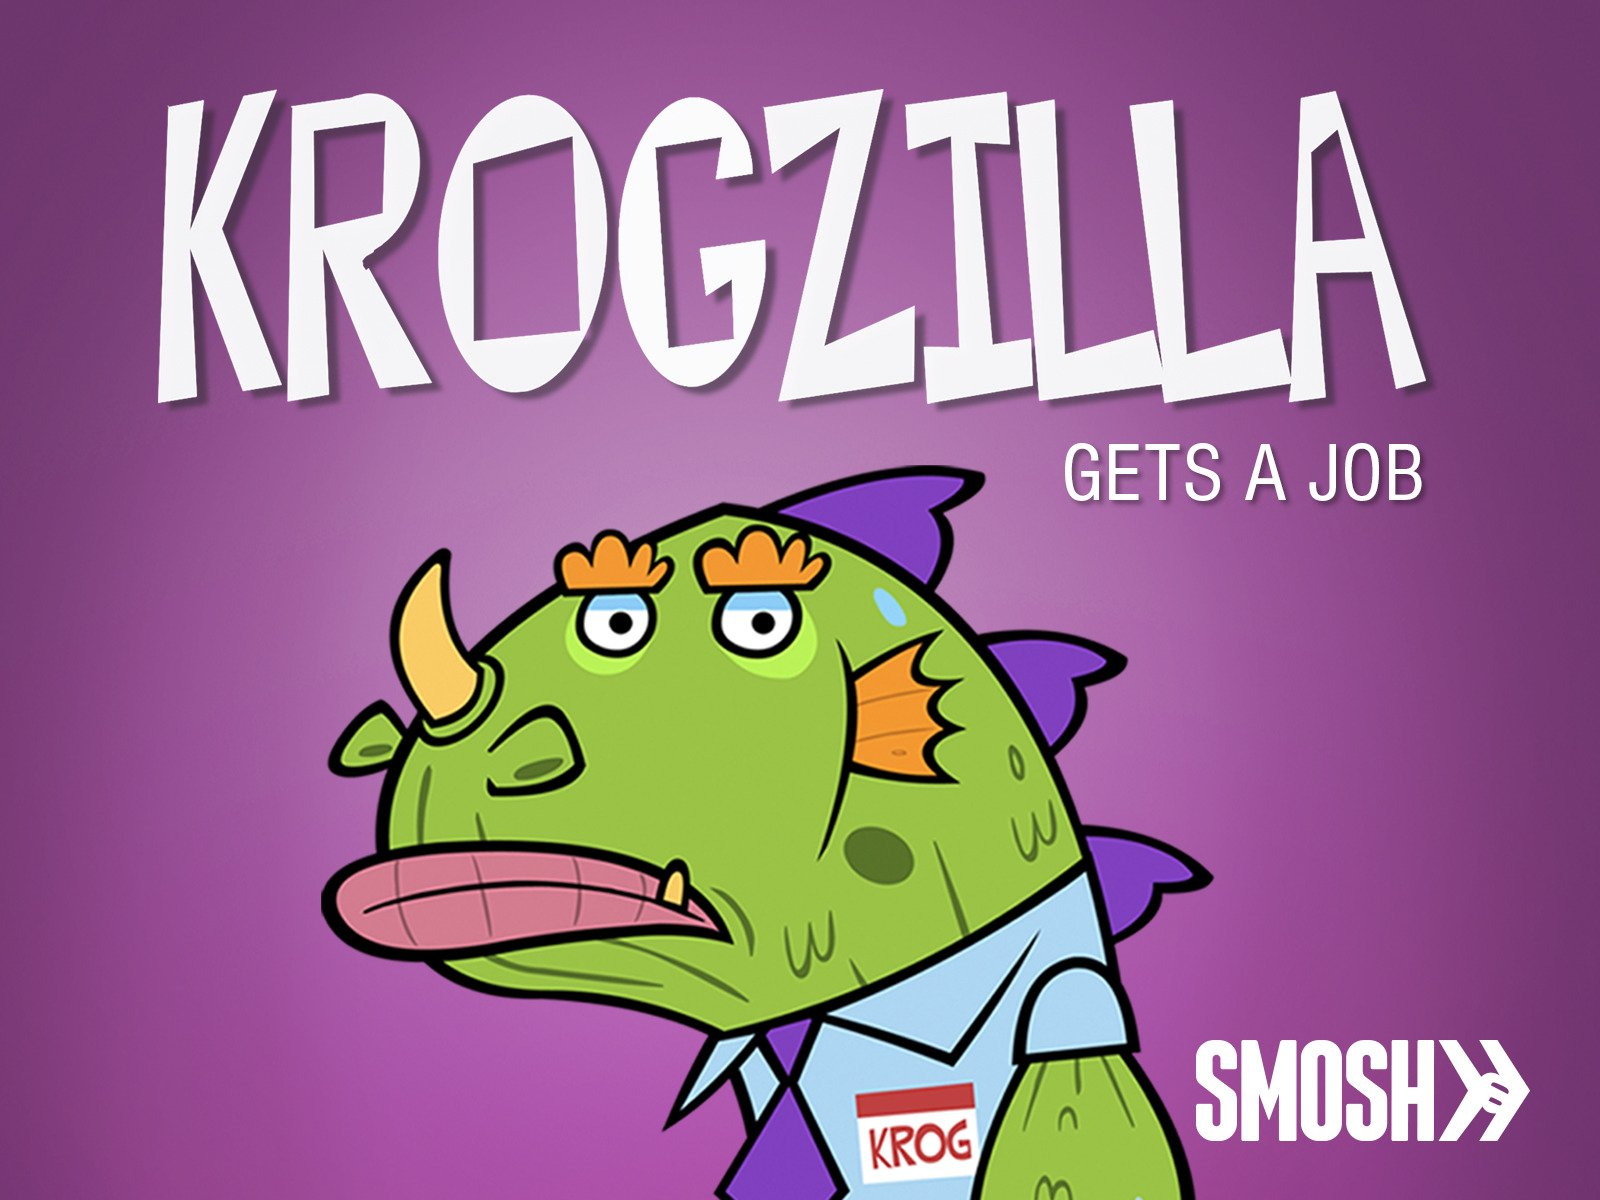 Krogzilla Gets a Job - Season 1